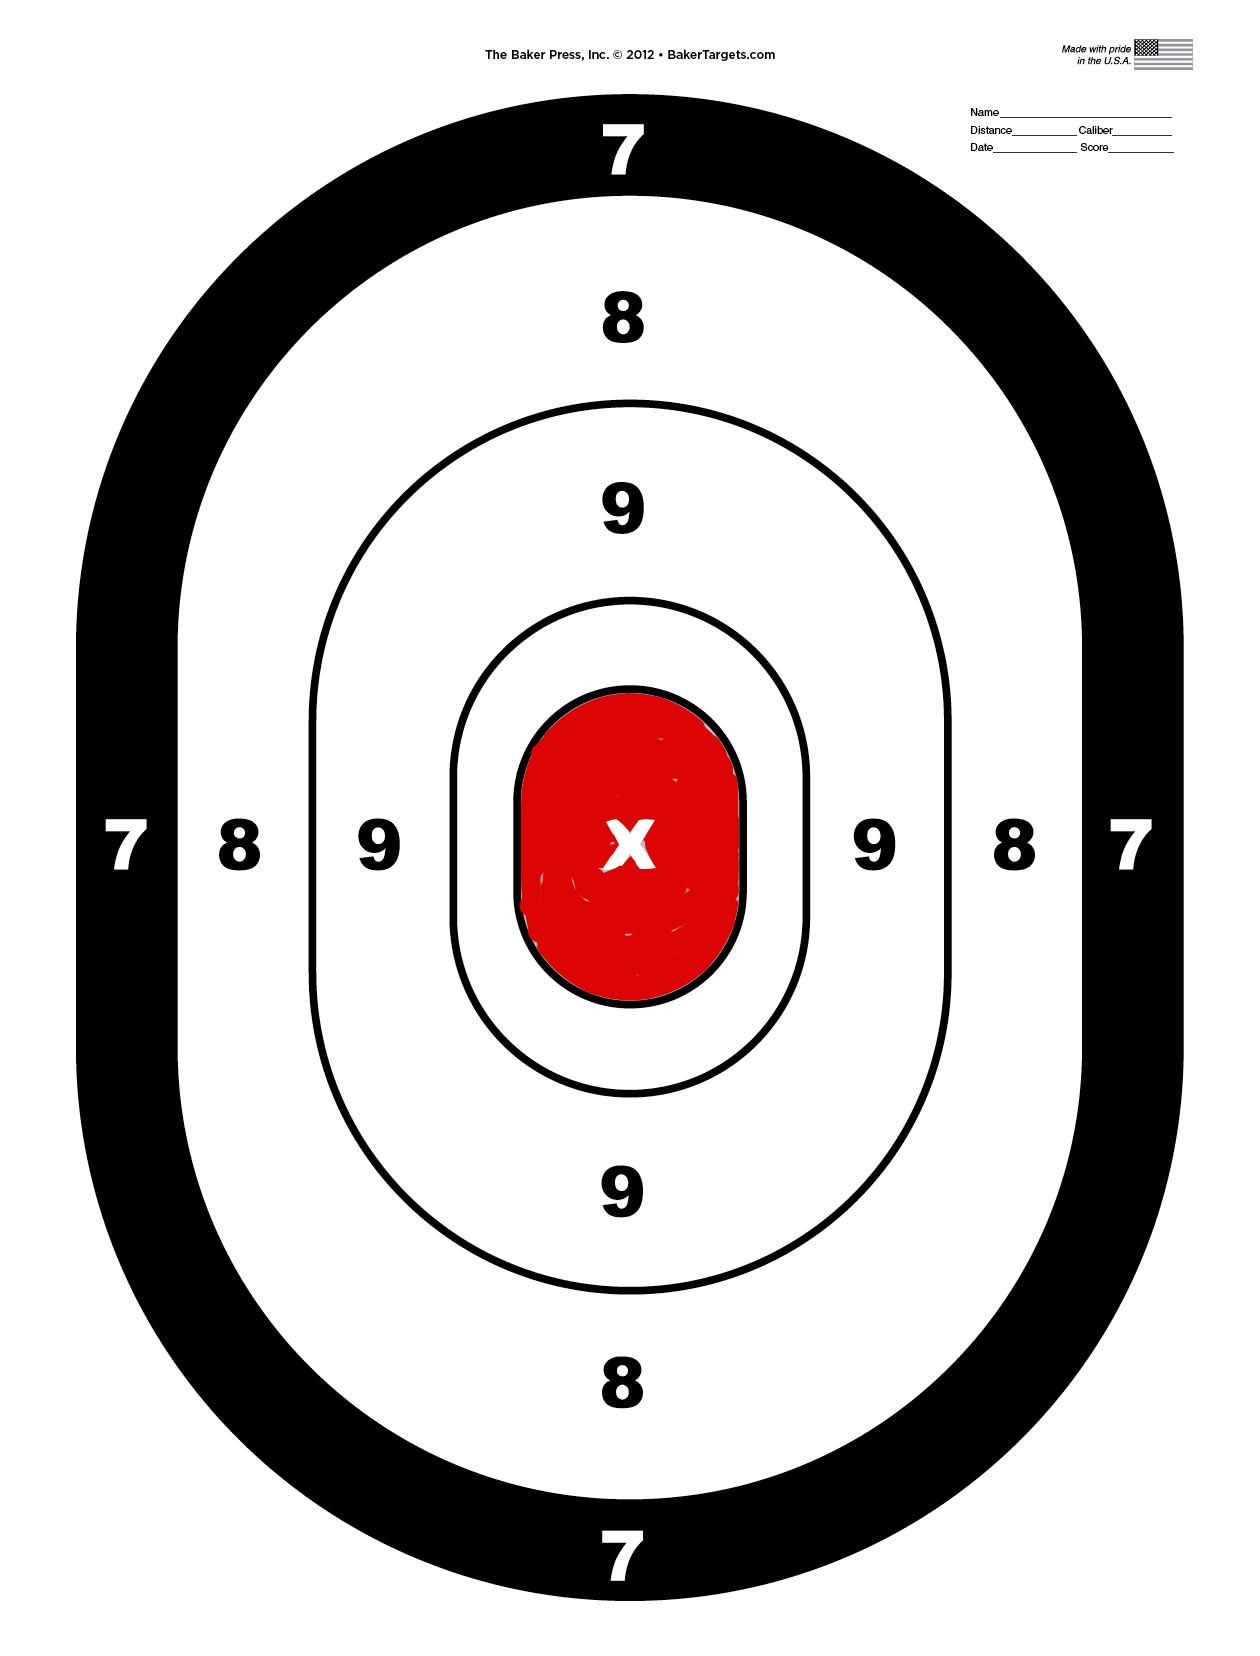 paper targets for shooting 23×35 broadside of the barn paper target 5/pk $409  carnival shoot 11×14  paper targets 12/pkg $389  dirty bird 12″ sight-in paper target 12/pk.